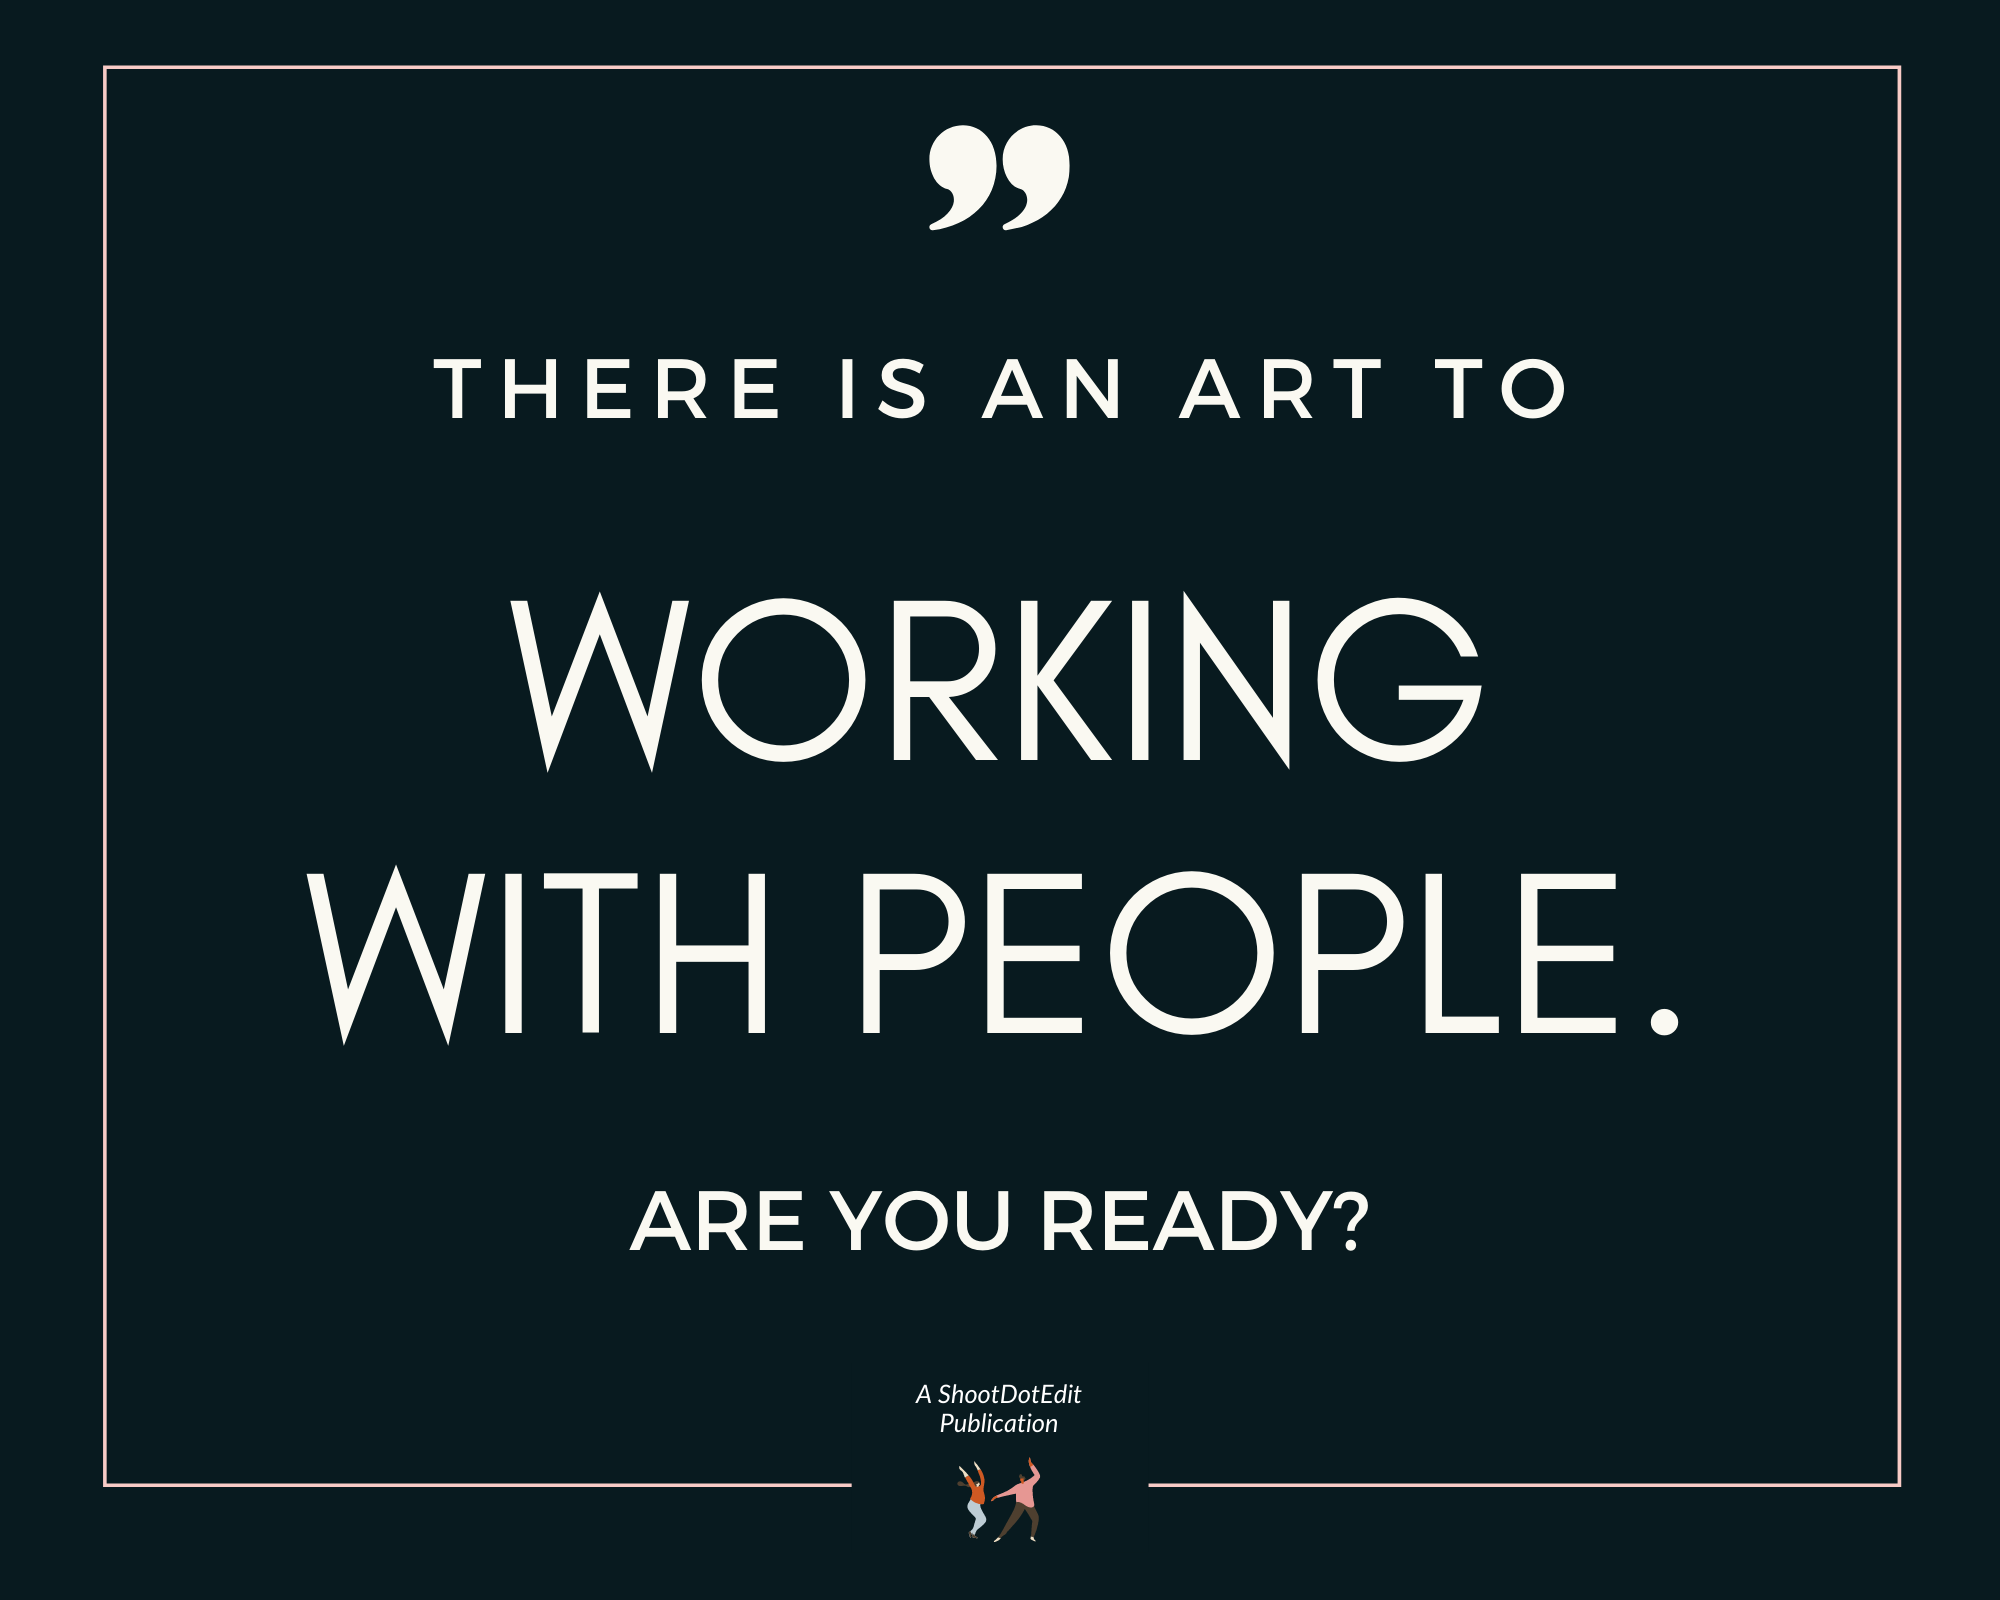 Infographic - There is an art to working with people. Are you ready